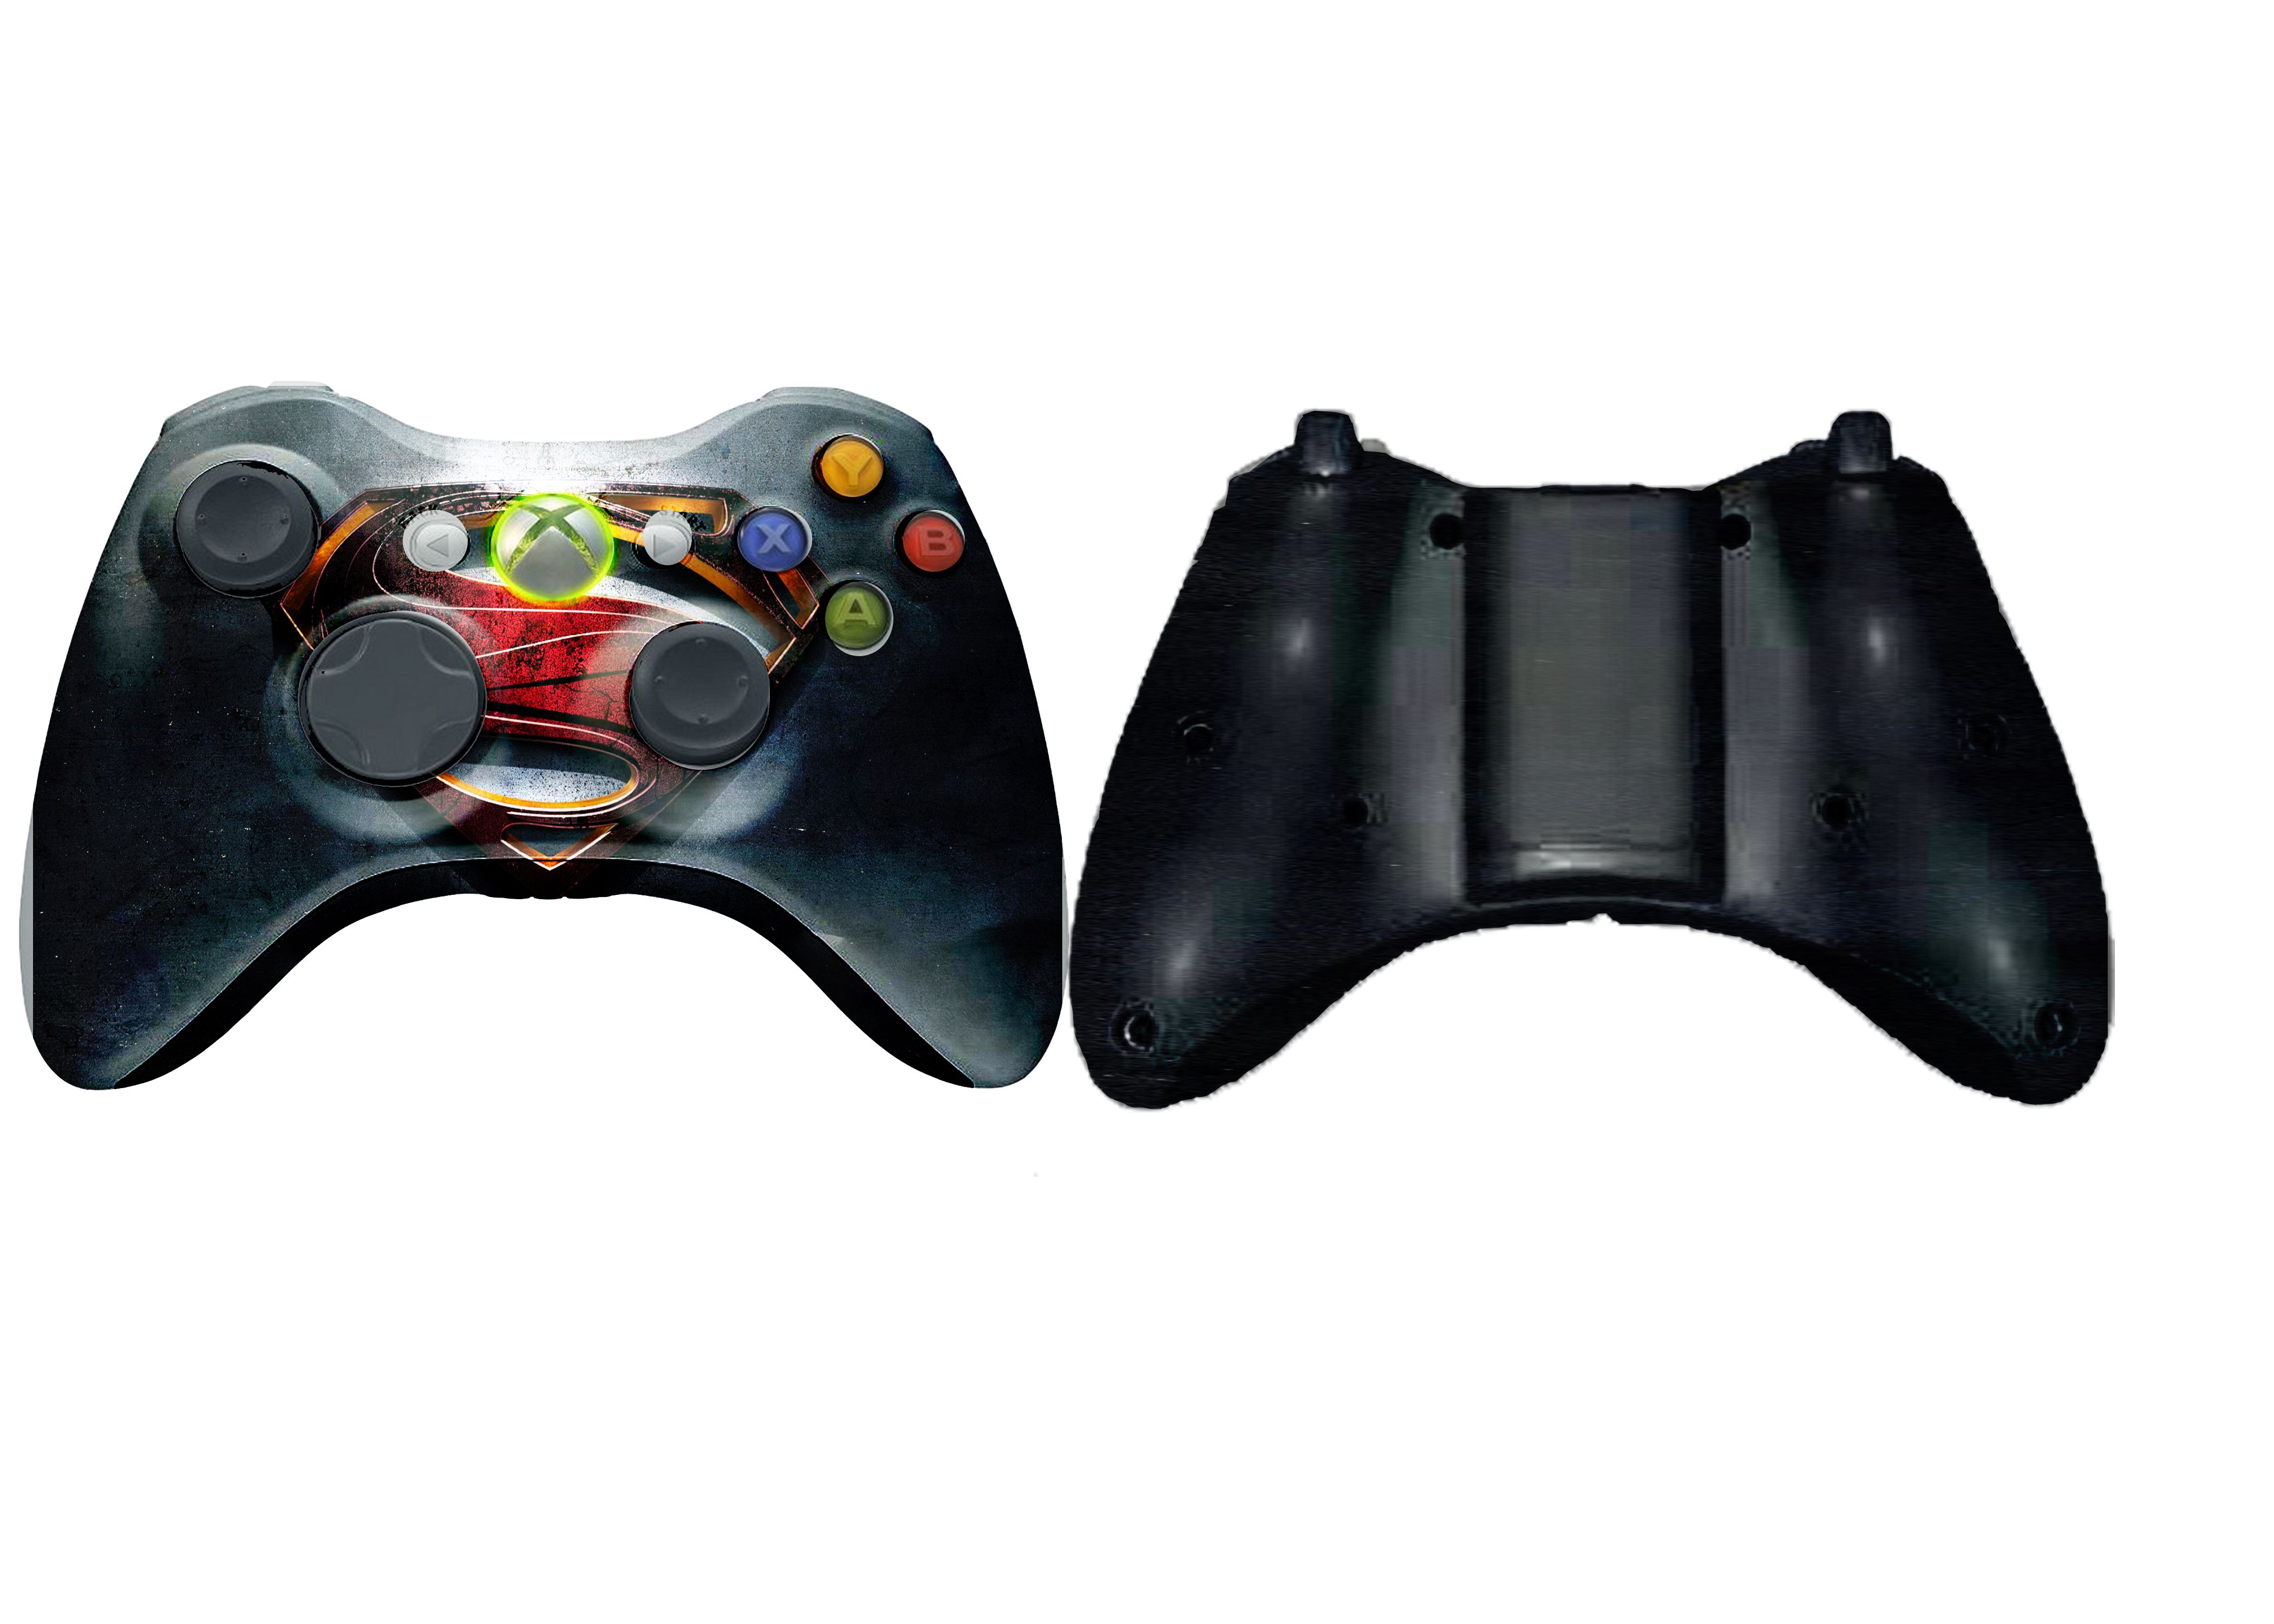 Man Of Steal $35.00 | Xbox 360 Controller Mods | Pinterest | Xbox ...